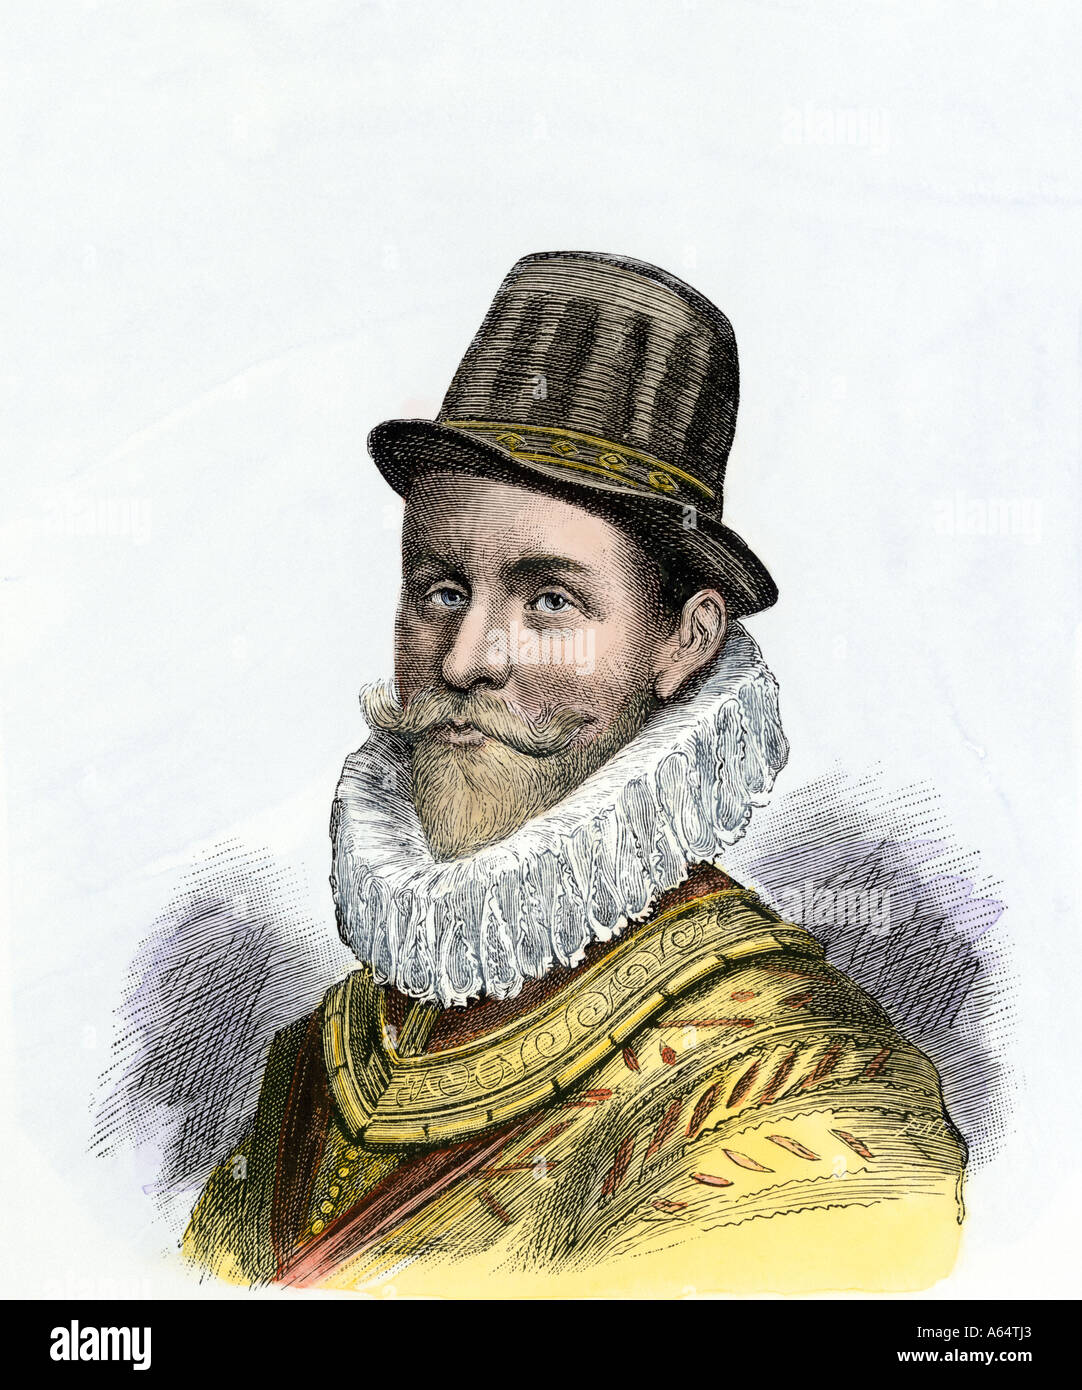 Sir John Hawkins English explorer and naval commander against the Spanish Armada 1588. Hand-colored woodcut - Stock Image